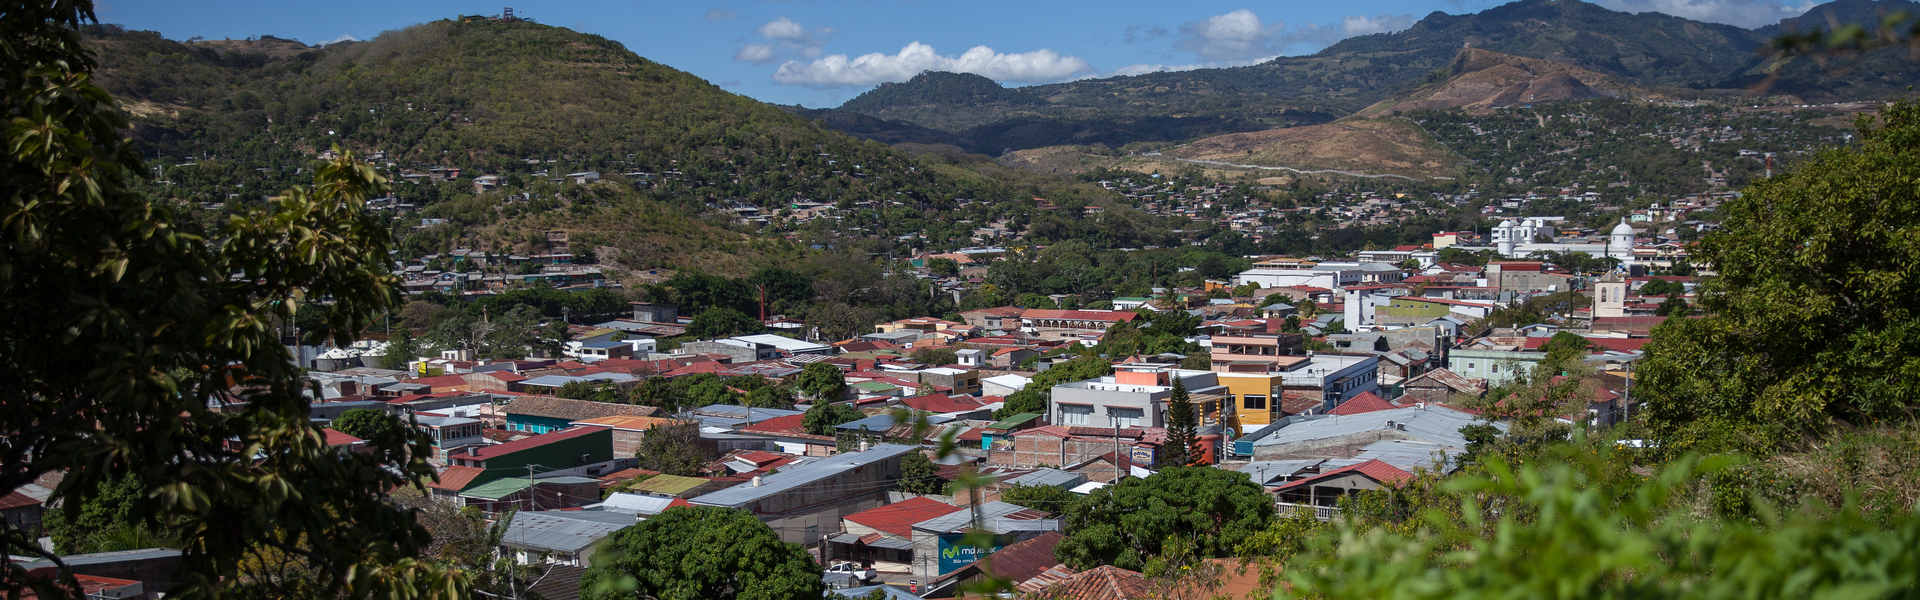 Looking down from a hillside at a city in Nicaragua